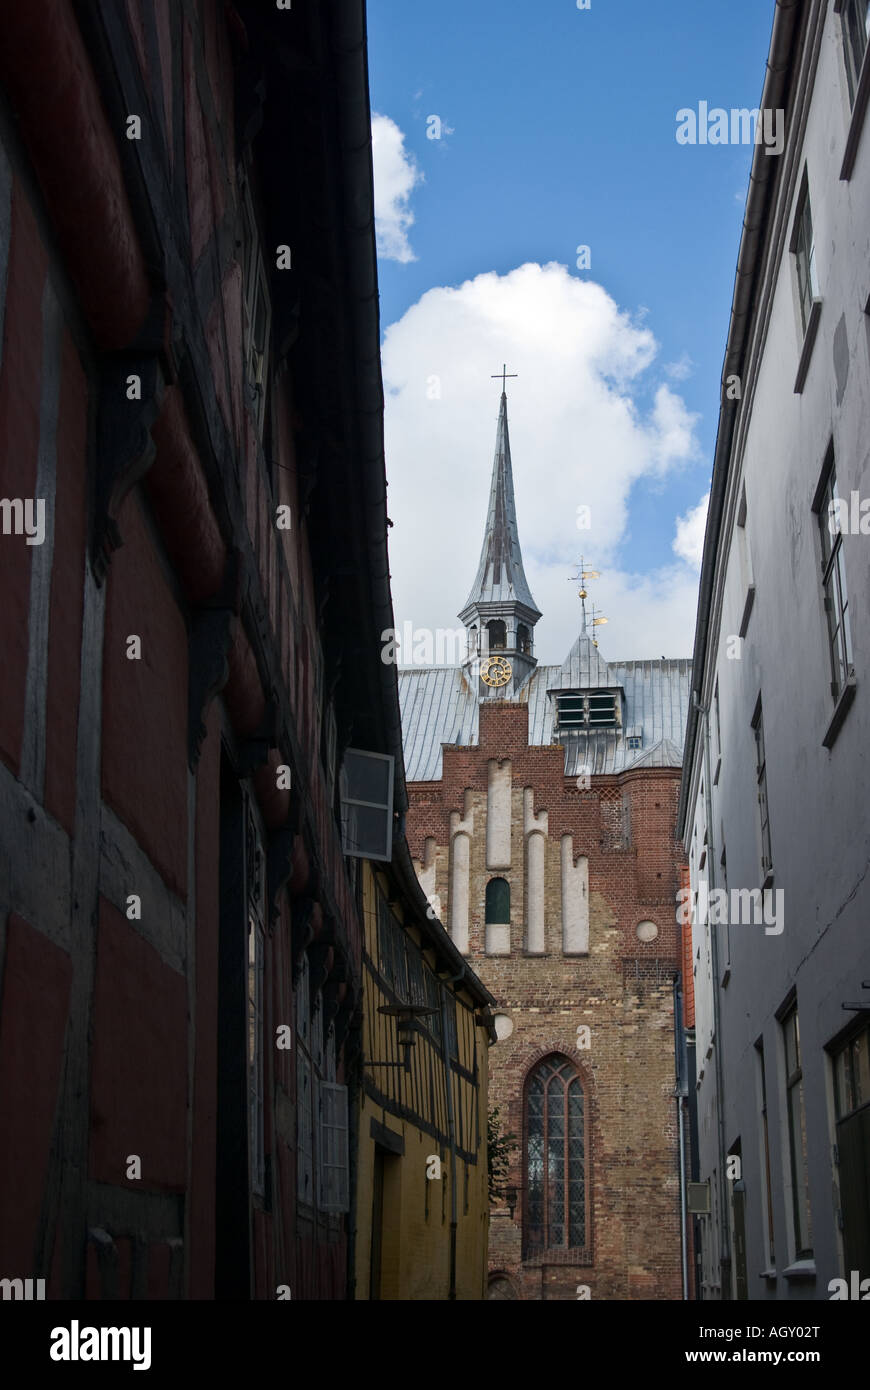 The cathedral in Haderslev, Denmark as seen through a narrow sidestreet. - Stock Image